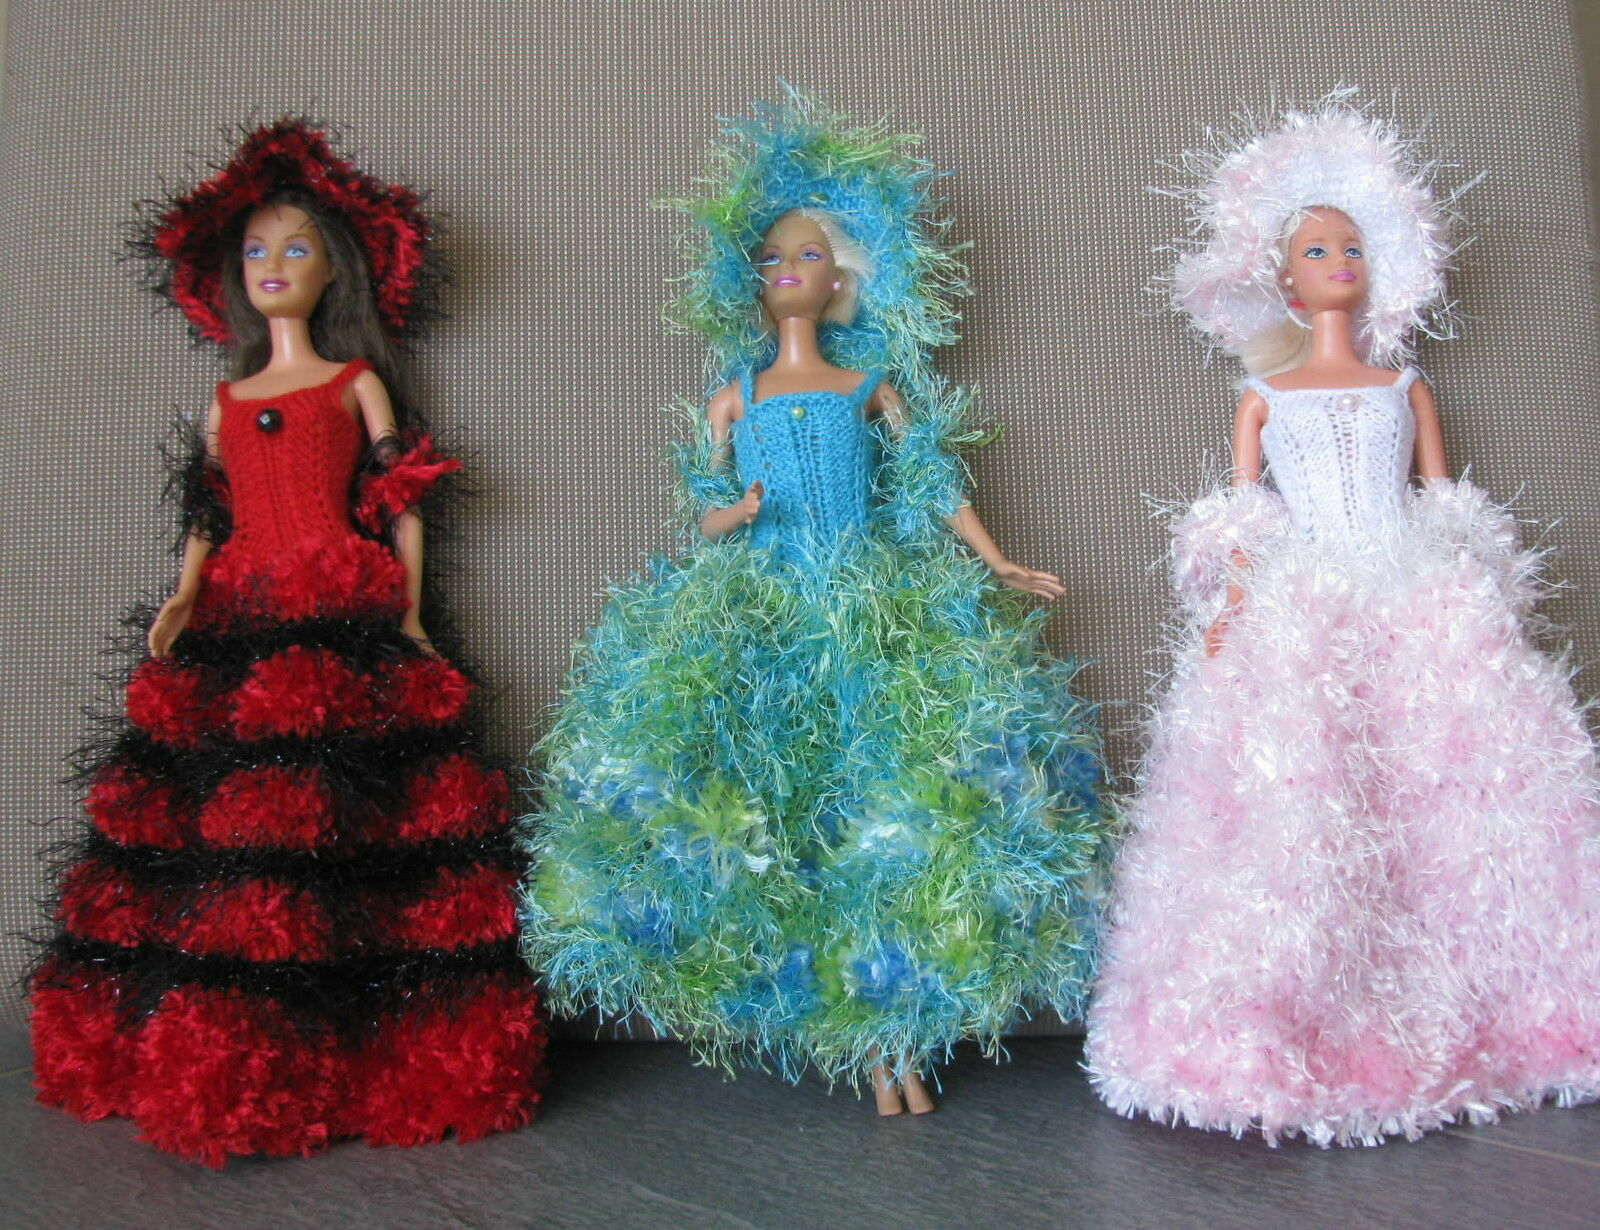 3 robes de poupée barbie modèles uniques fait main made in France chapeau boa 40